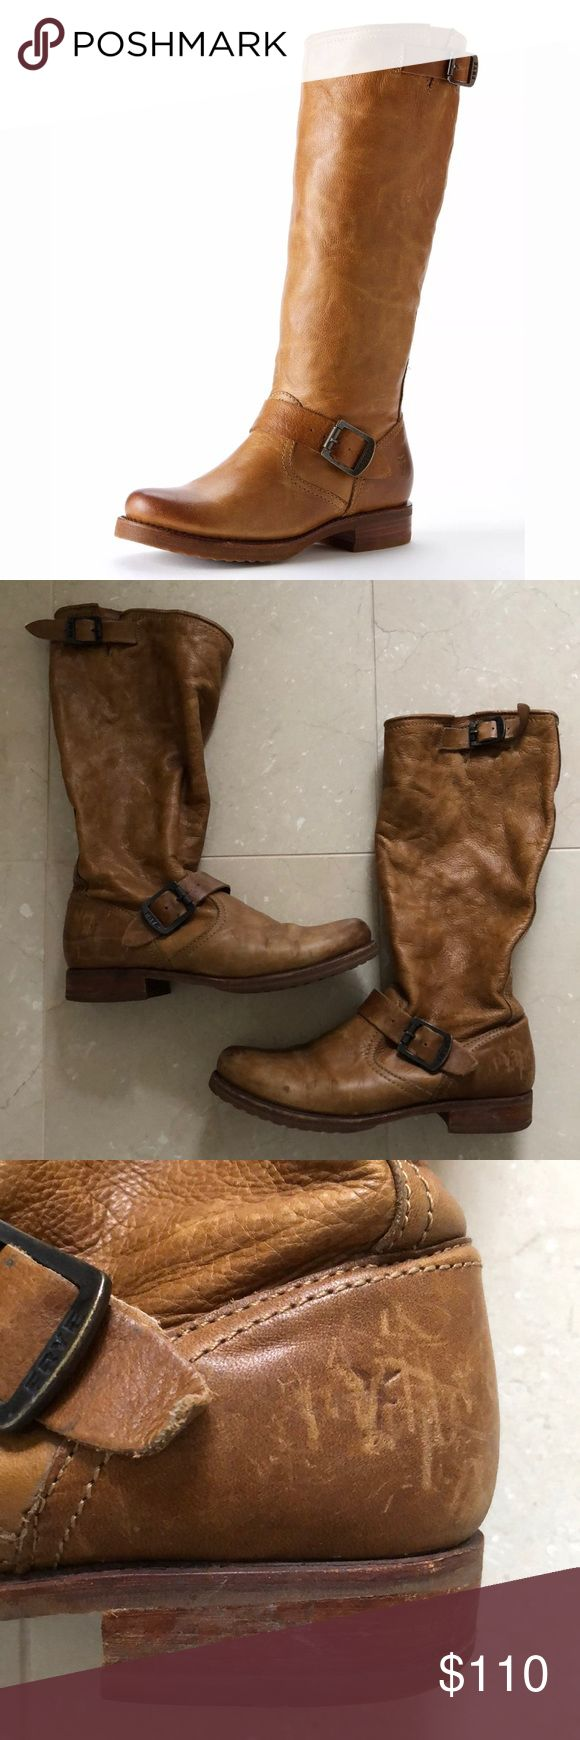 Frye Veronica Slouch Boots Camel Leather Size 8.5 Frye Veronica Slouch Boots size 8.5 Good used condition with lots of life left Super cute! Frye Shoes